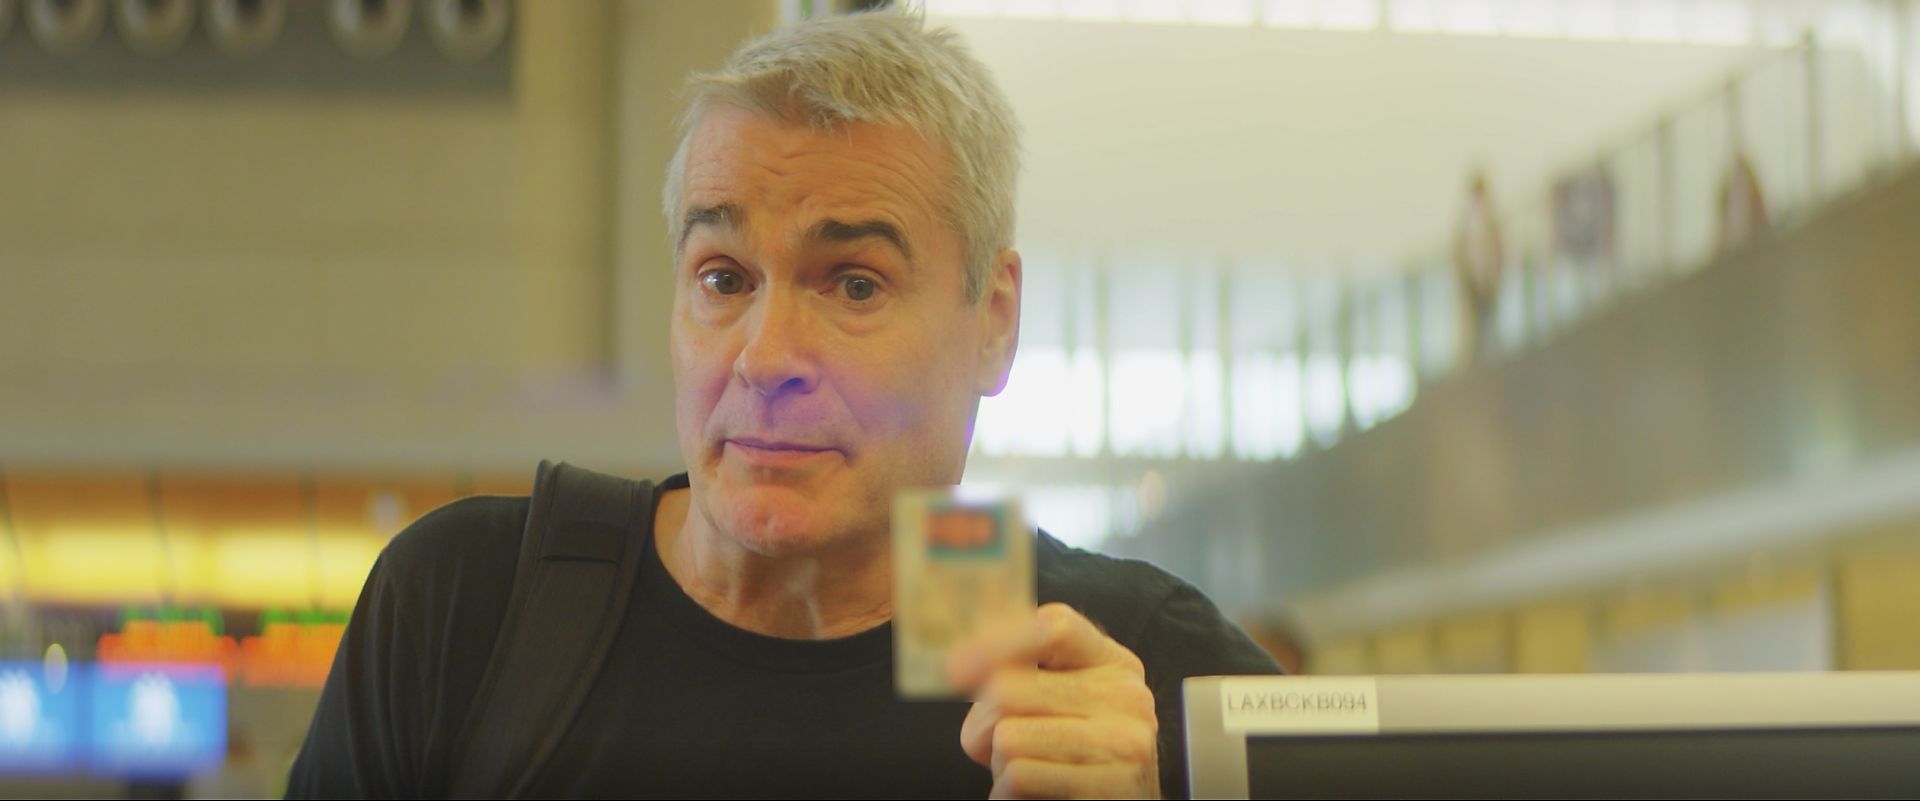 Henry Rollins with his driver's license at LAX